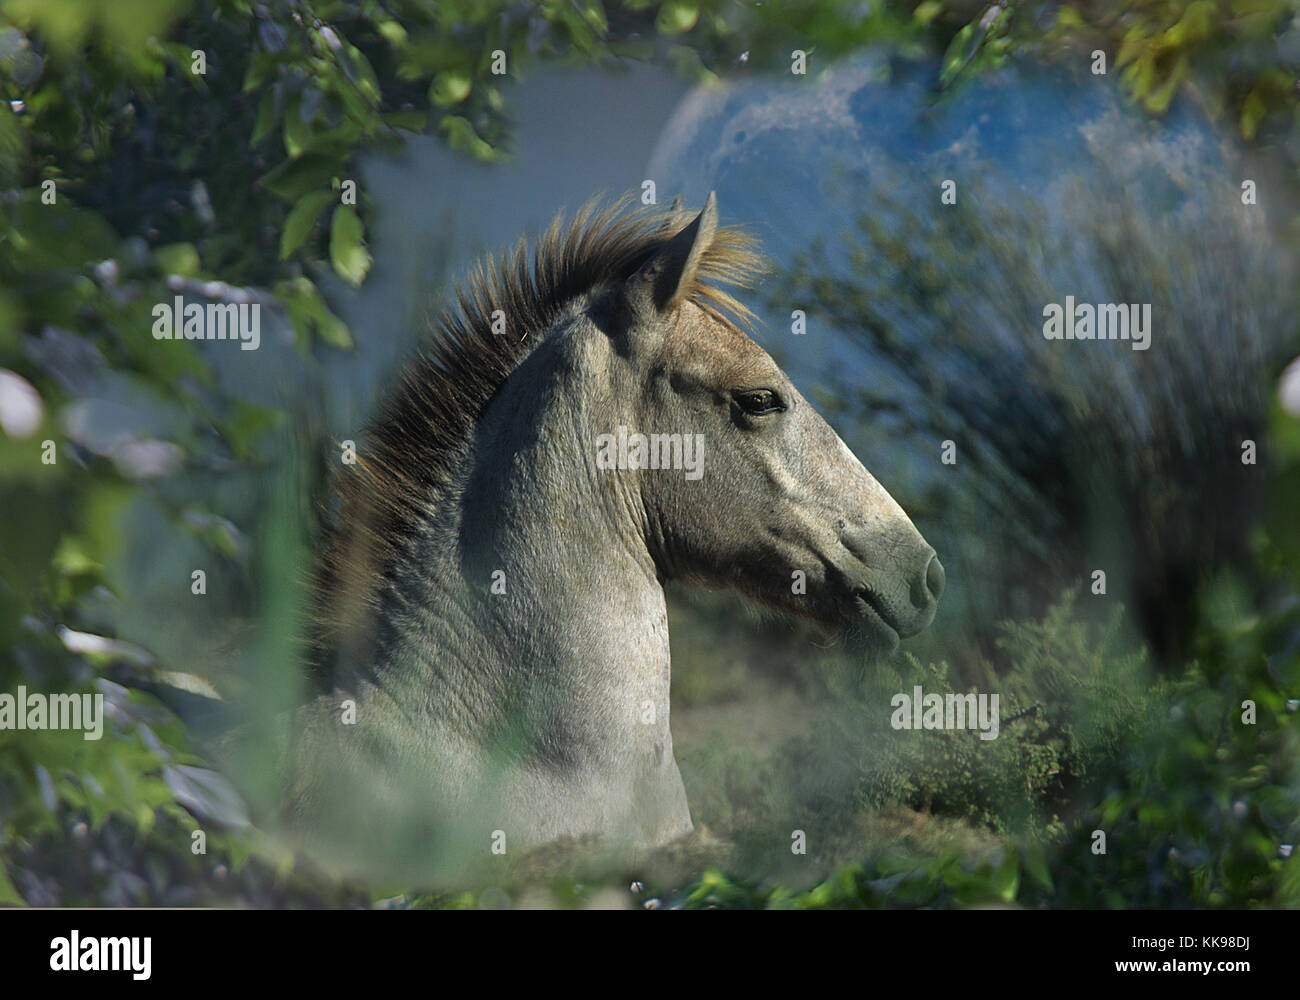 A mystical foal lies down amid ferns and foliage whilst a giant moon emerges behind. - Stock Image